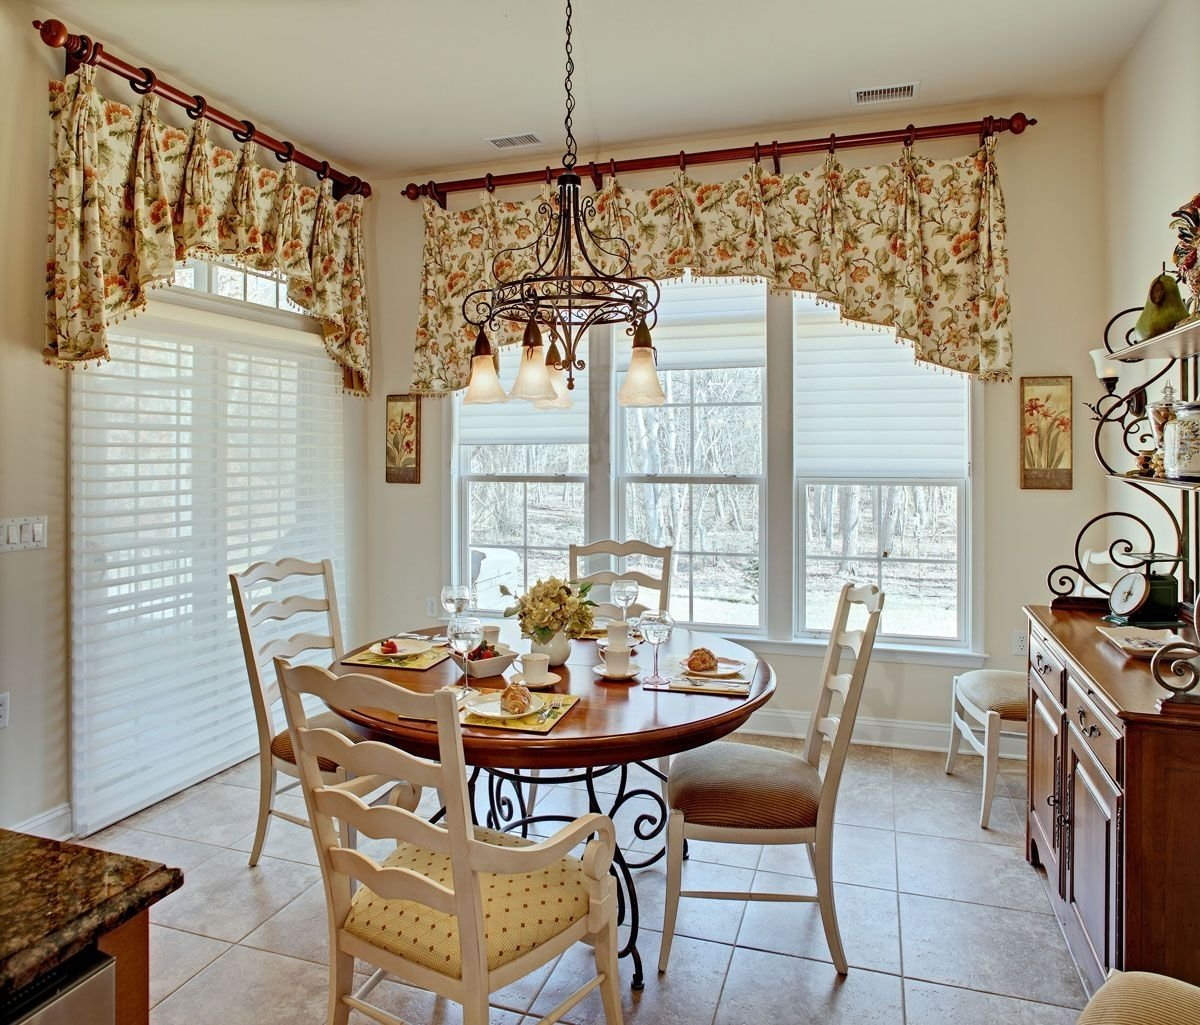 mesmerizing curtains for dining room modernoffice ideas on